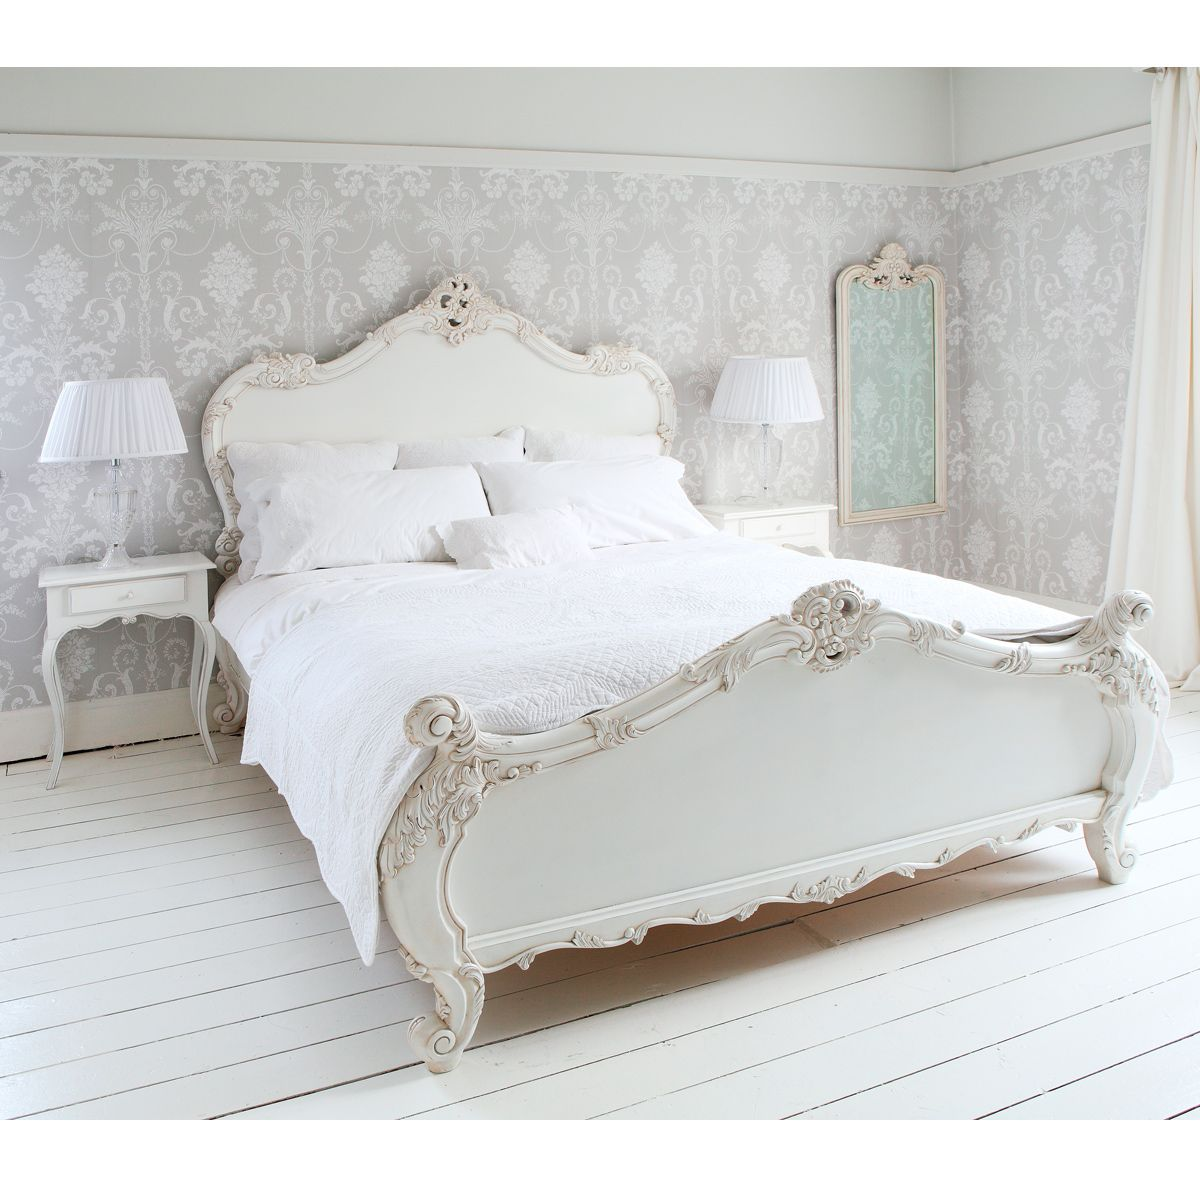 French Bed On Pinterest Classic Furniture Luxury